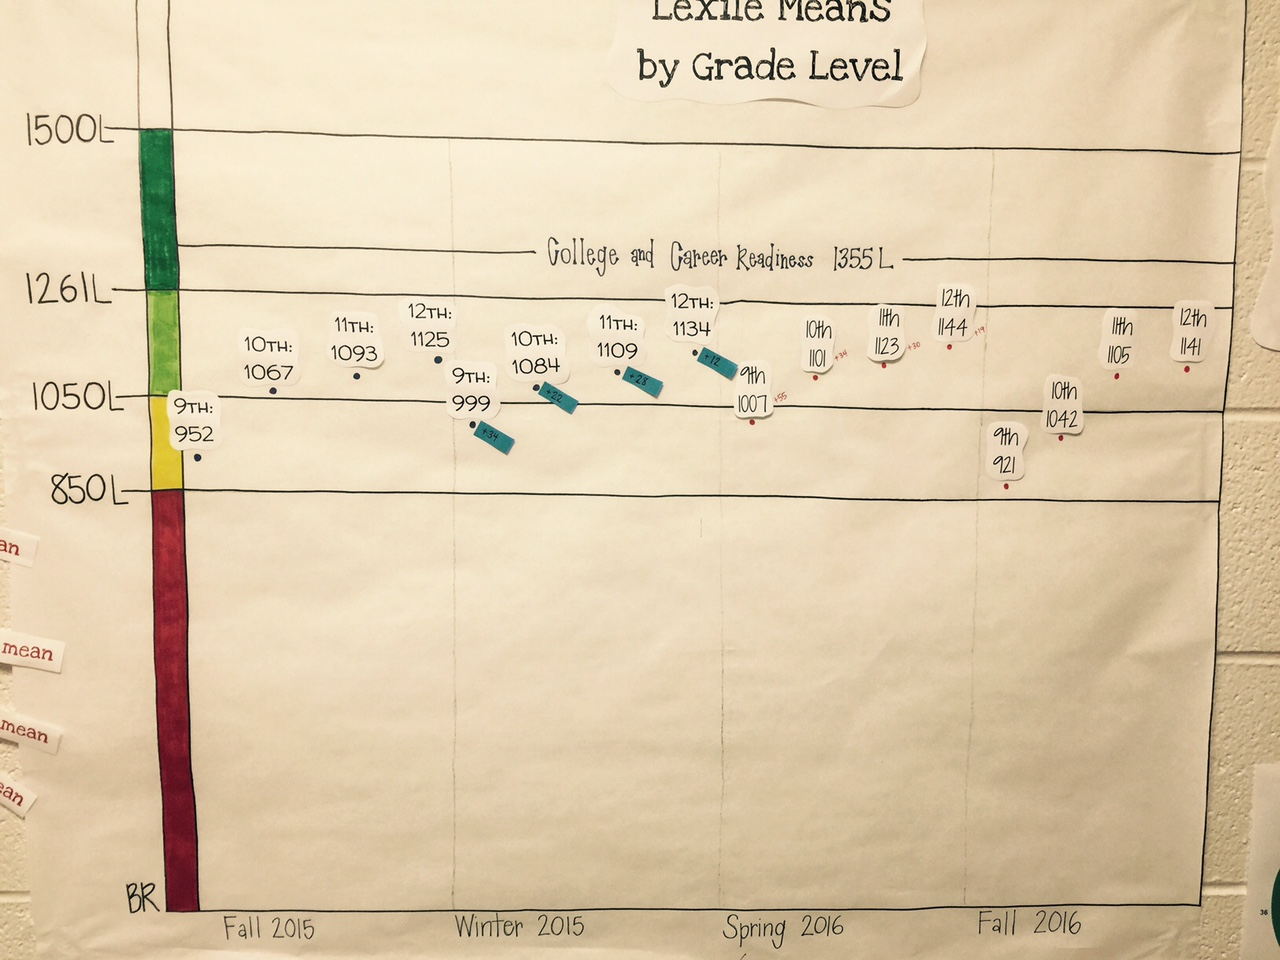 Lexile Means by Grade Level